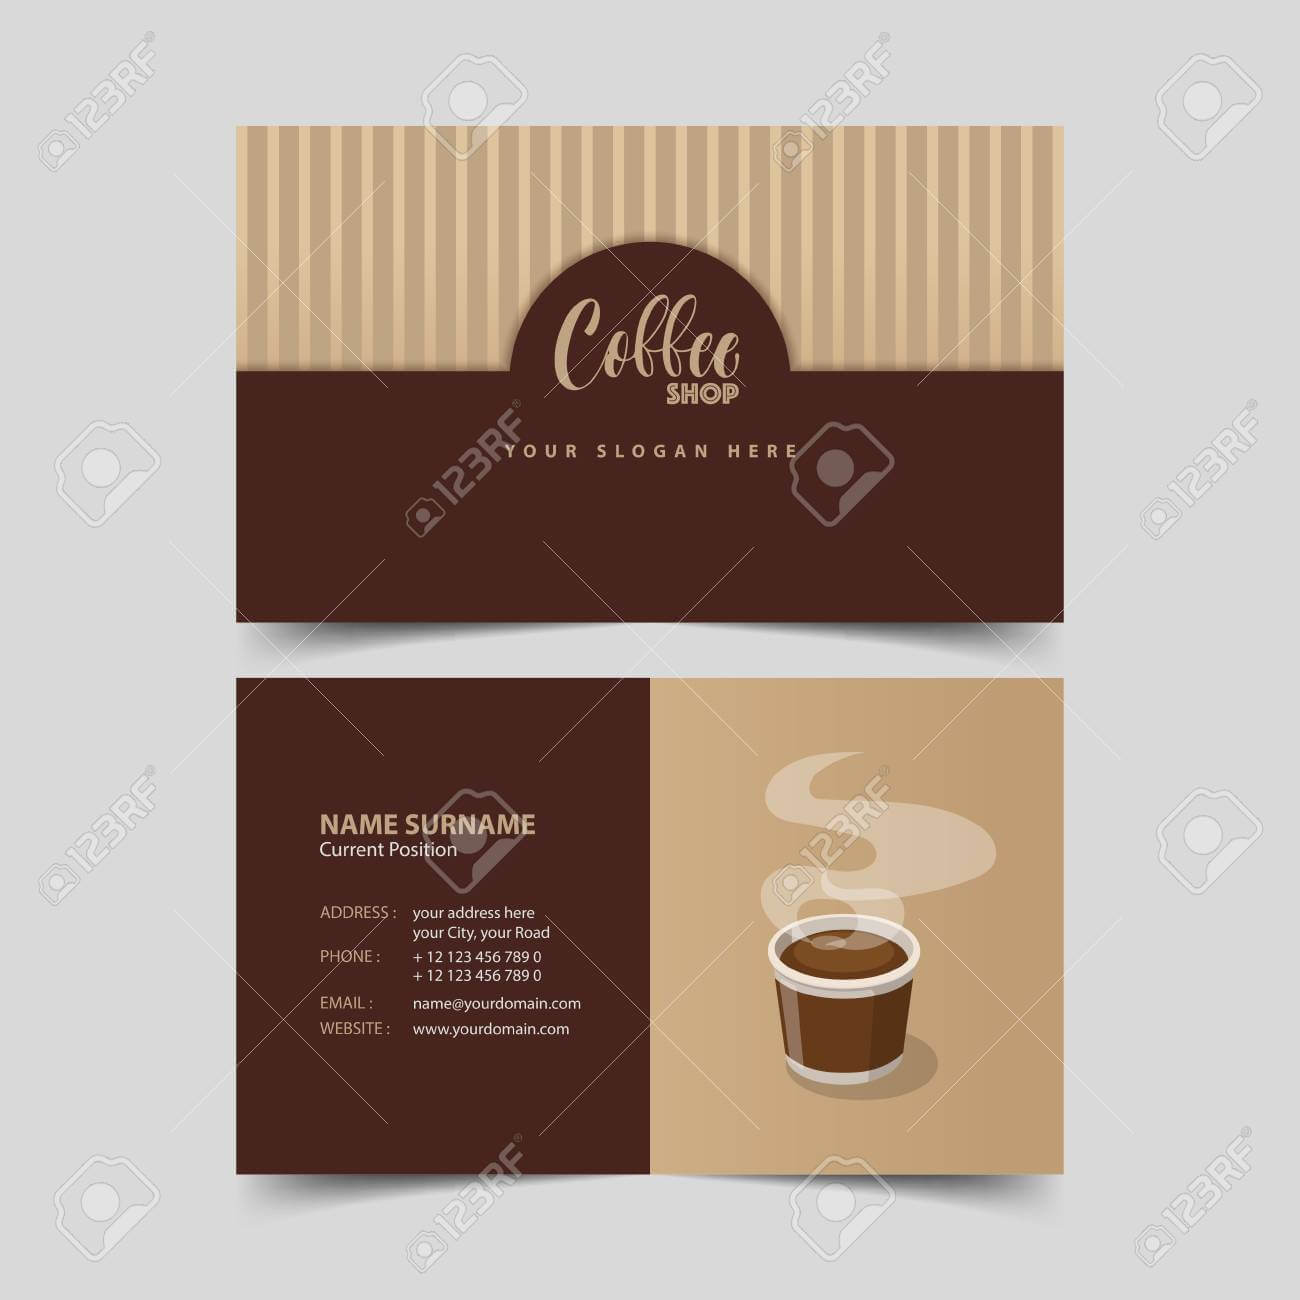 Coffee Shop Business Card Design Template. inside Coffee Business Card Template Free